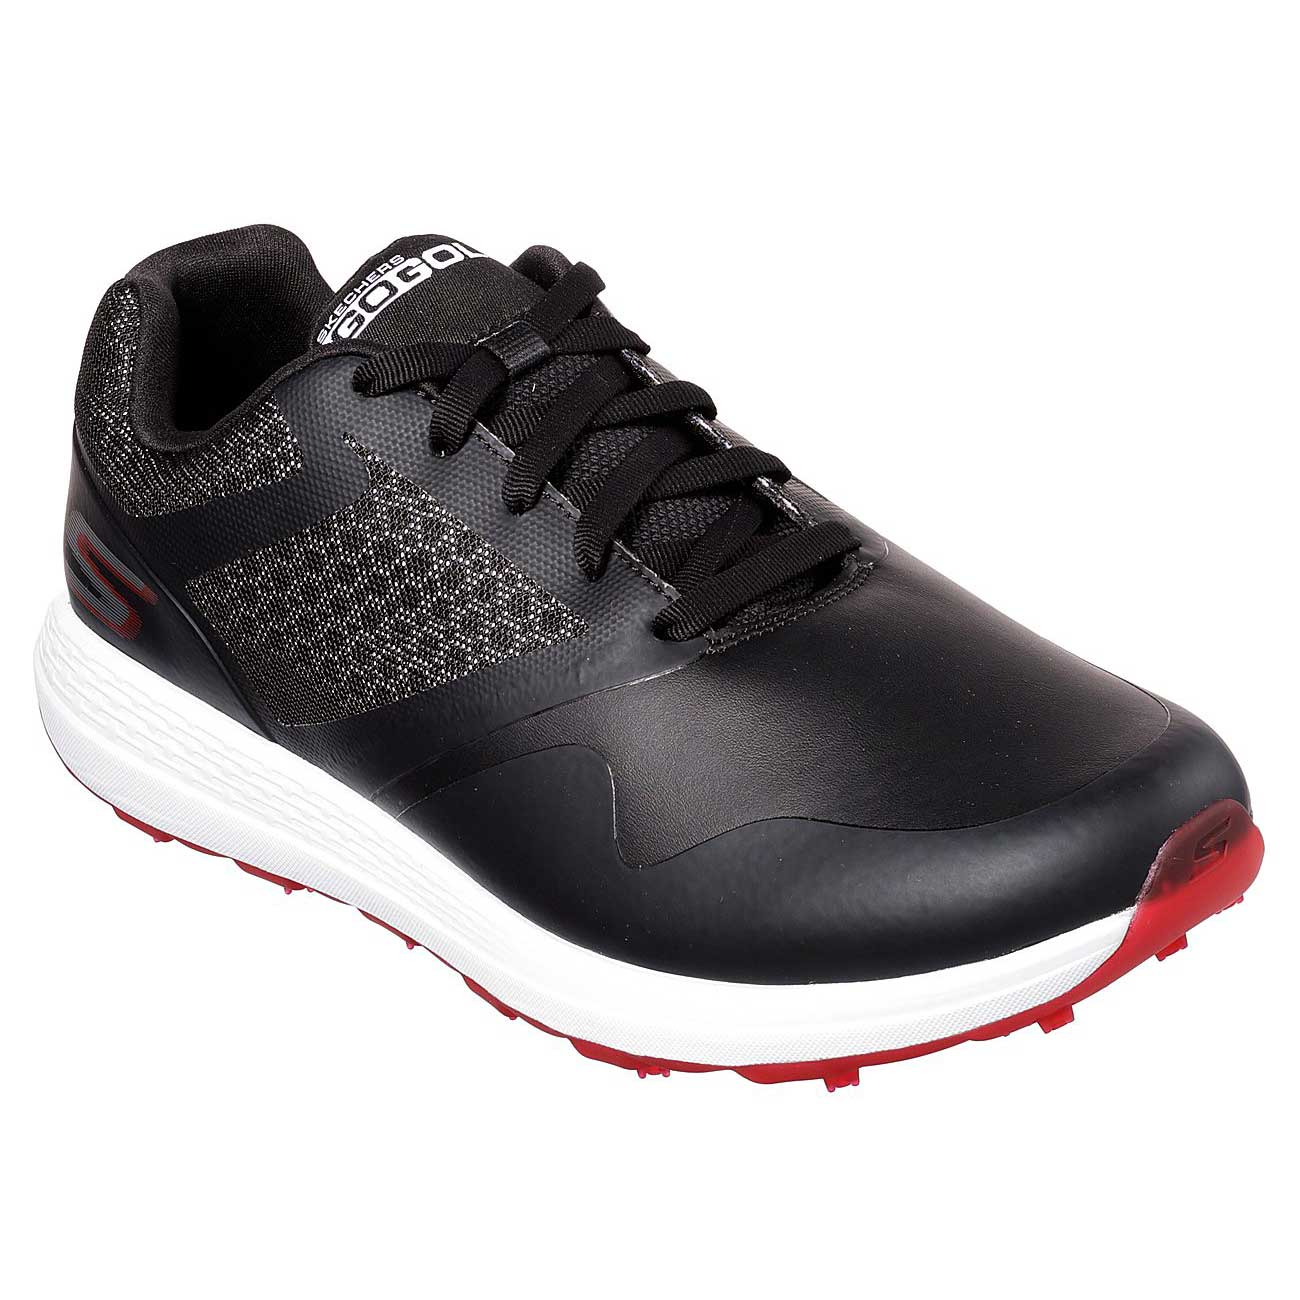 Skechers Men's Go Golf Max Black Red Golf Shoe